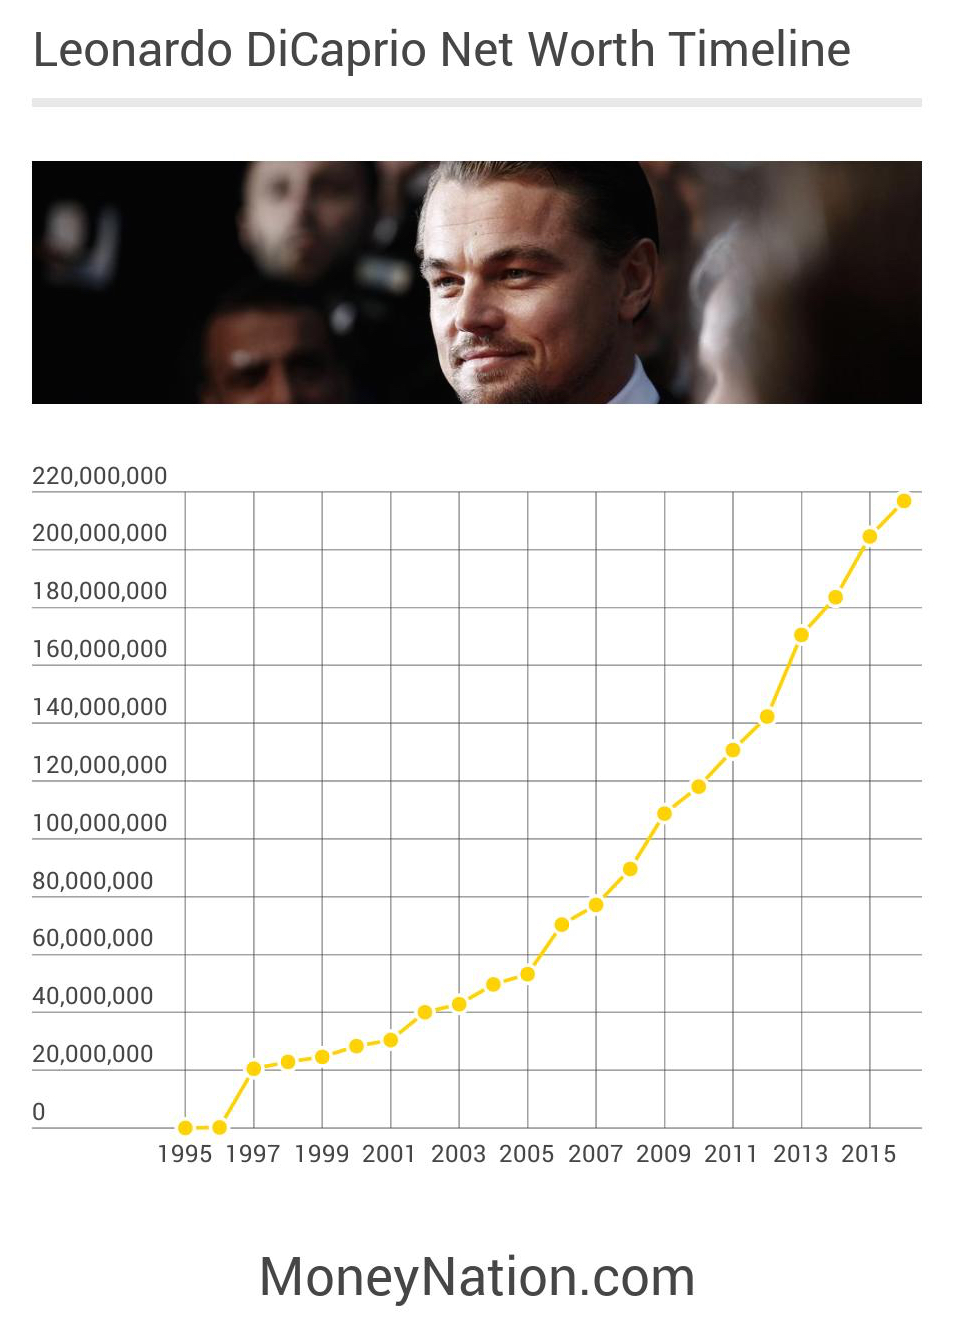 Leonardo DiCaprio Net Worth Through Time